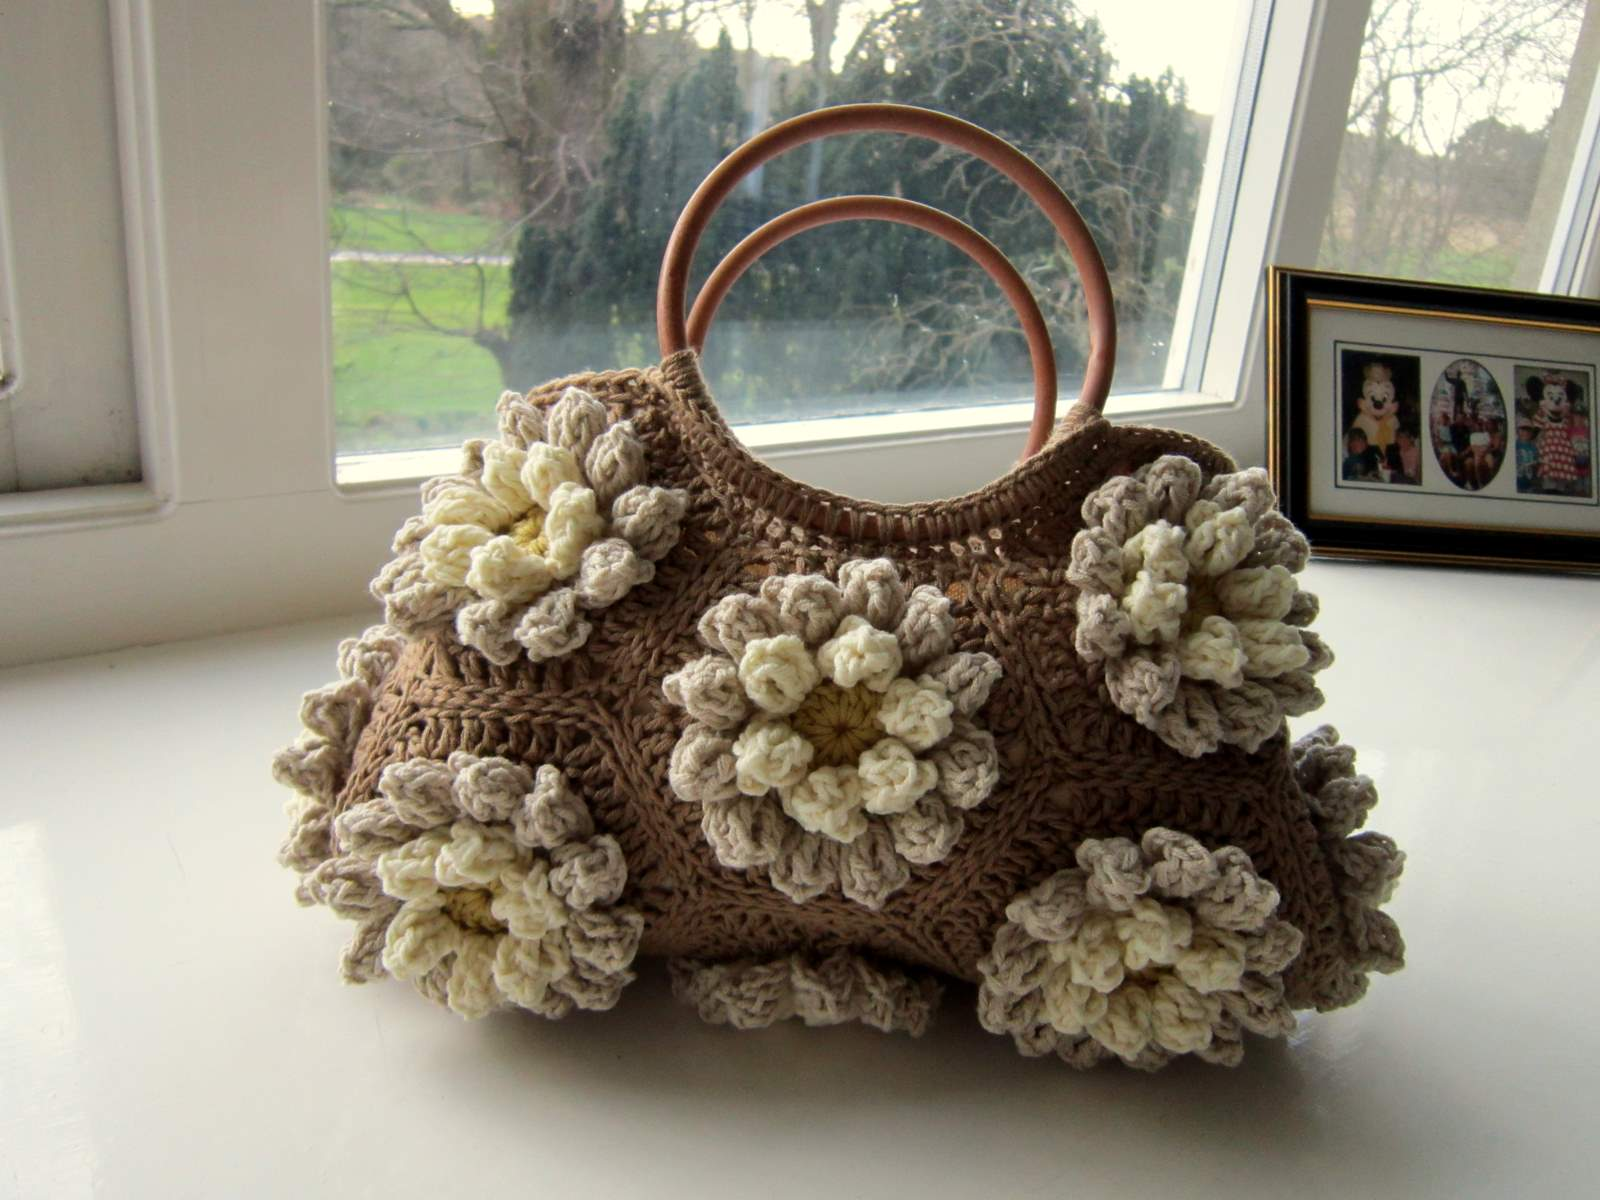 Crochet Bag Tutorial : ... di borse alluncinetto - CROCHET BAGS FREE PATTERNS - (Prima Parte